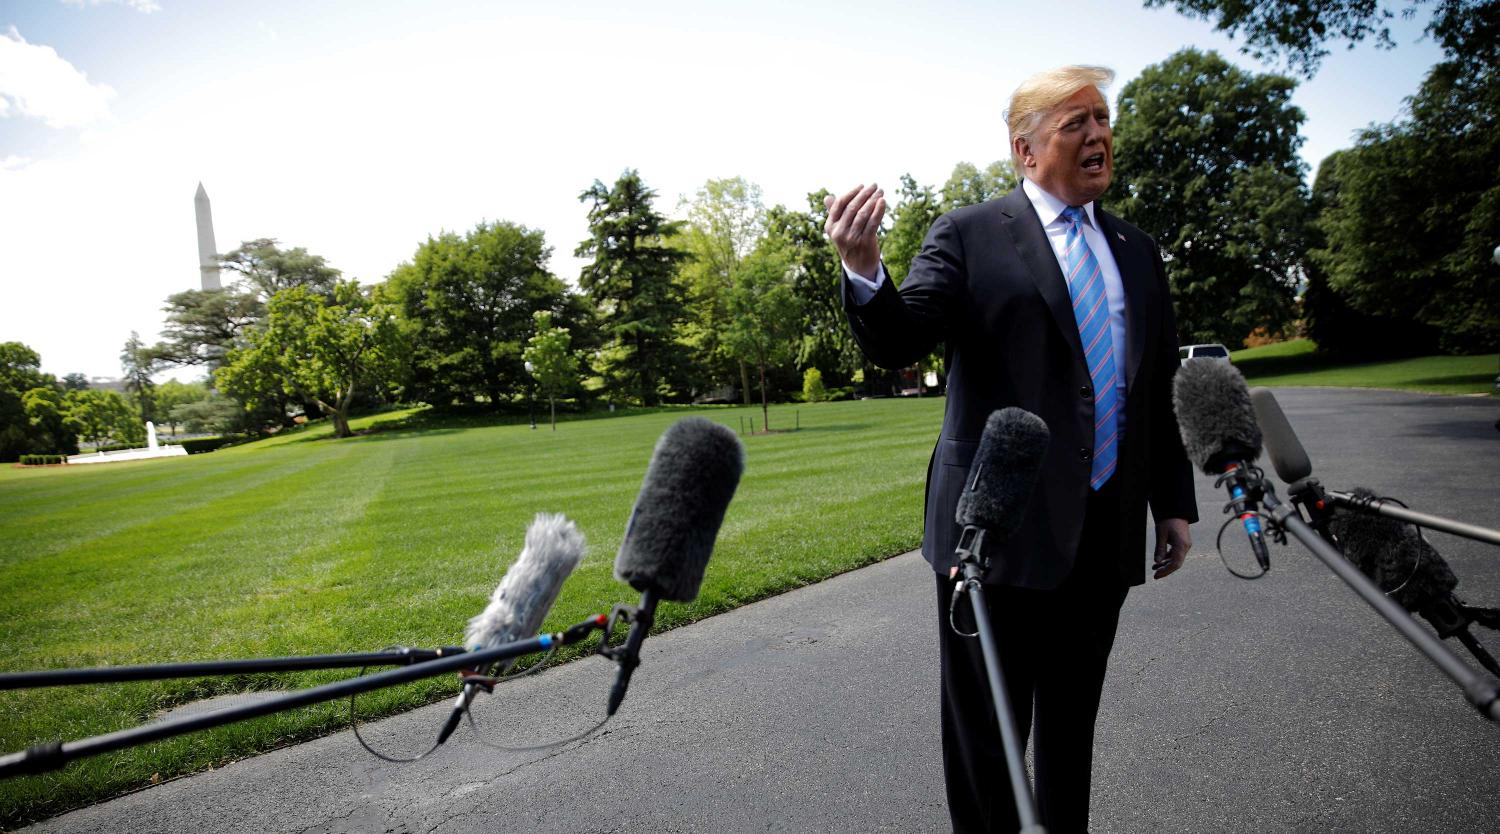 U.S. President Donald Trump talks to reporters from the White House in Washington, U.S., May 14, 2019.